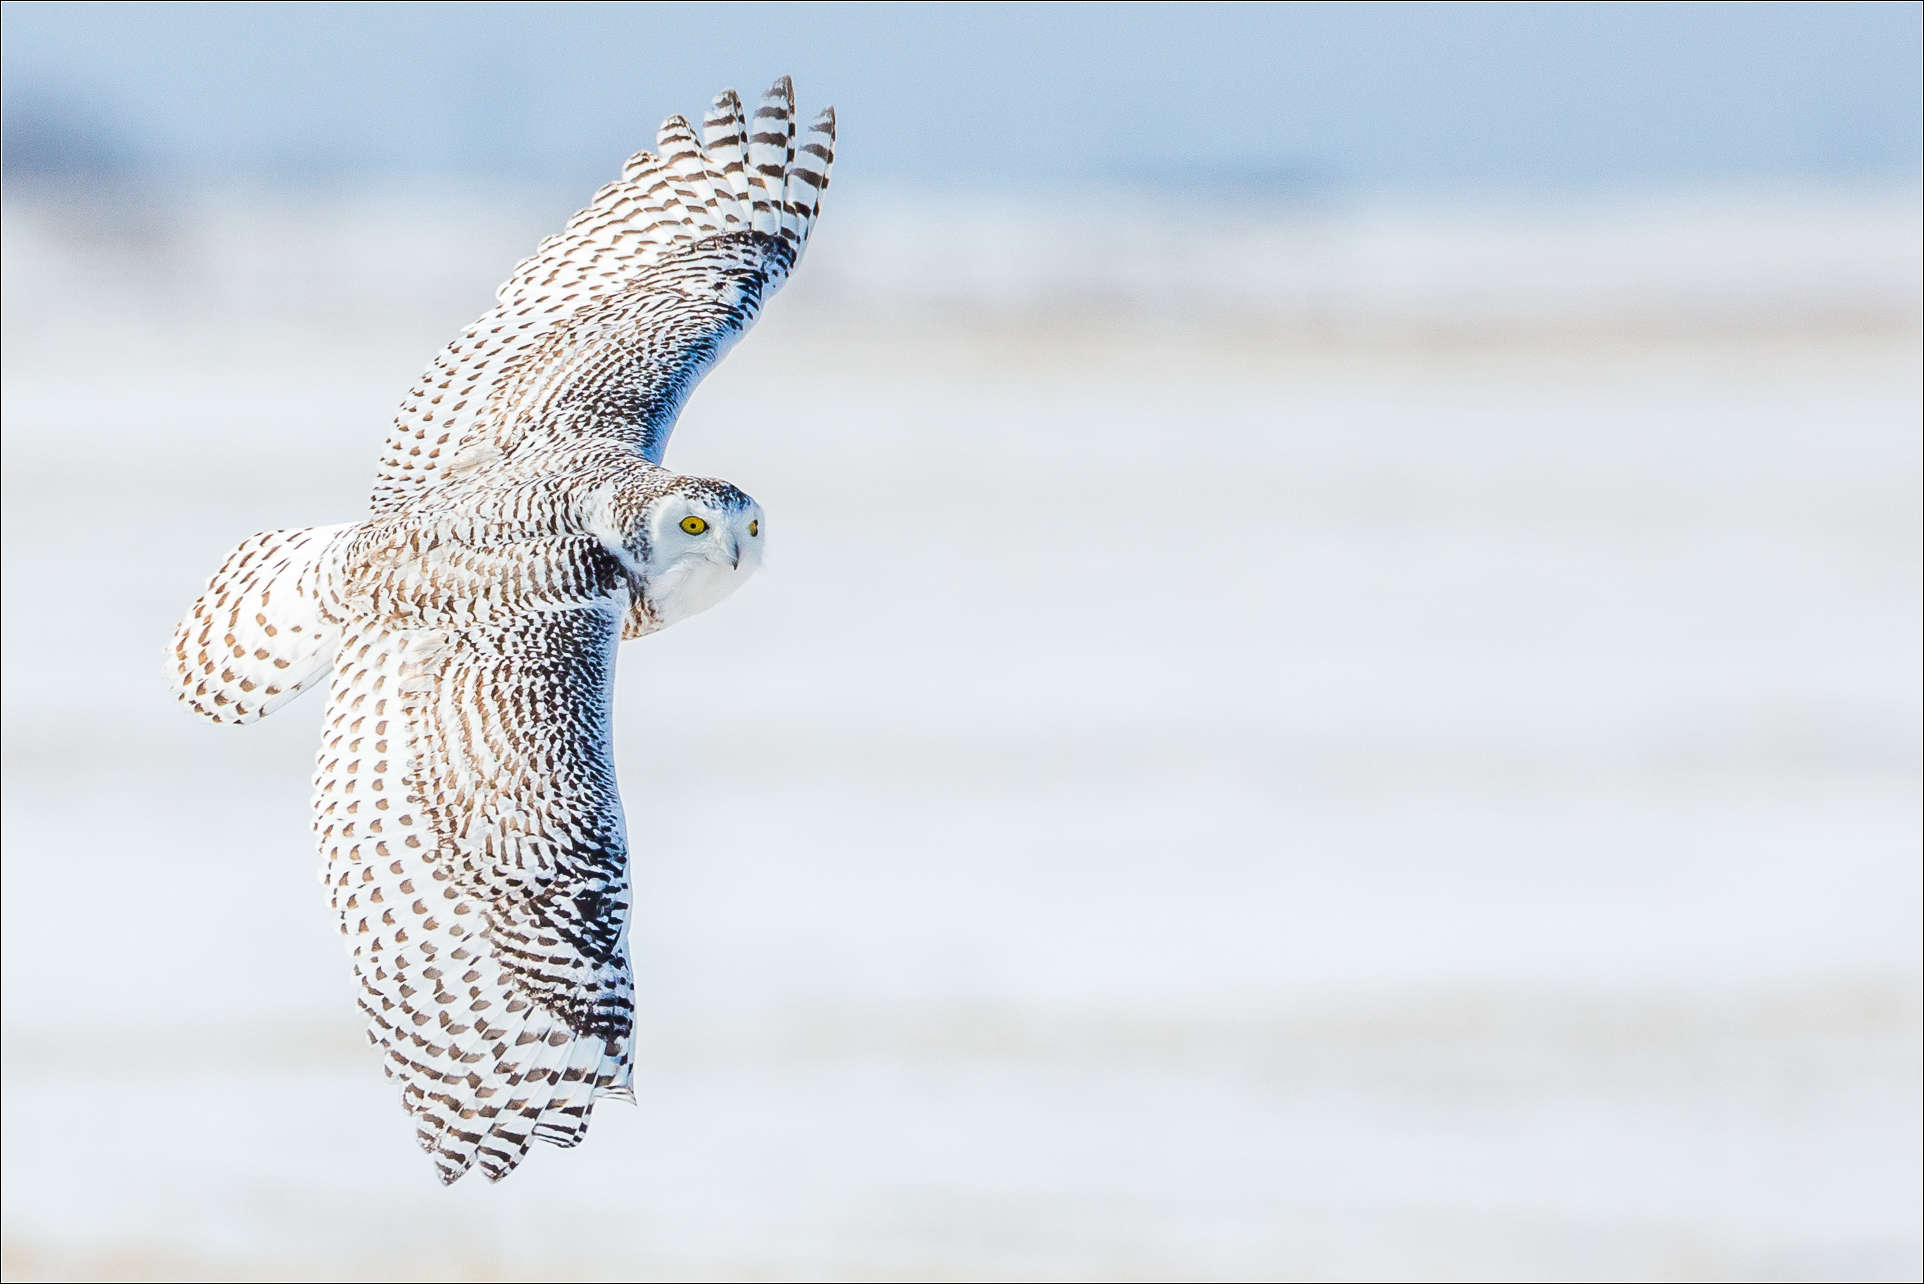 Snowy owl in flight at night - photo#4